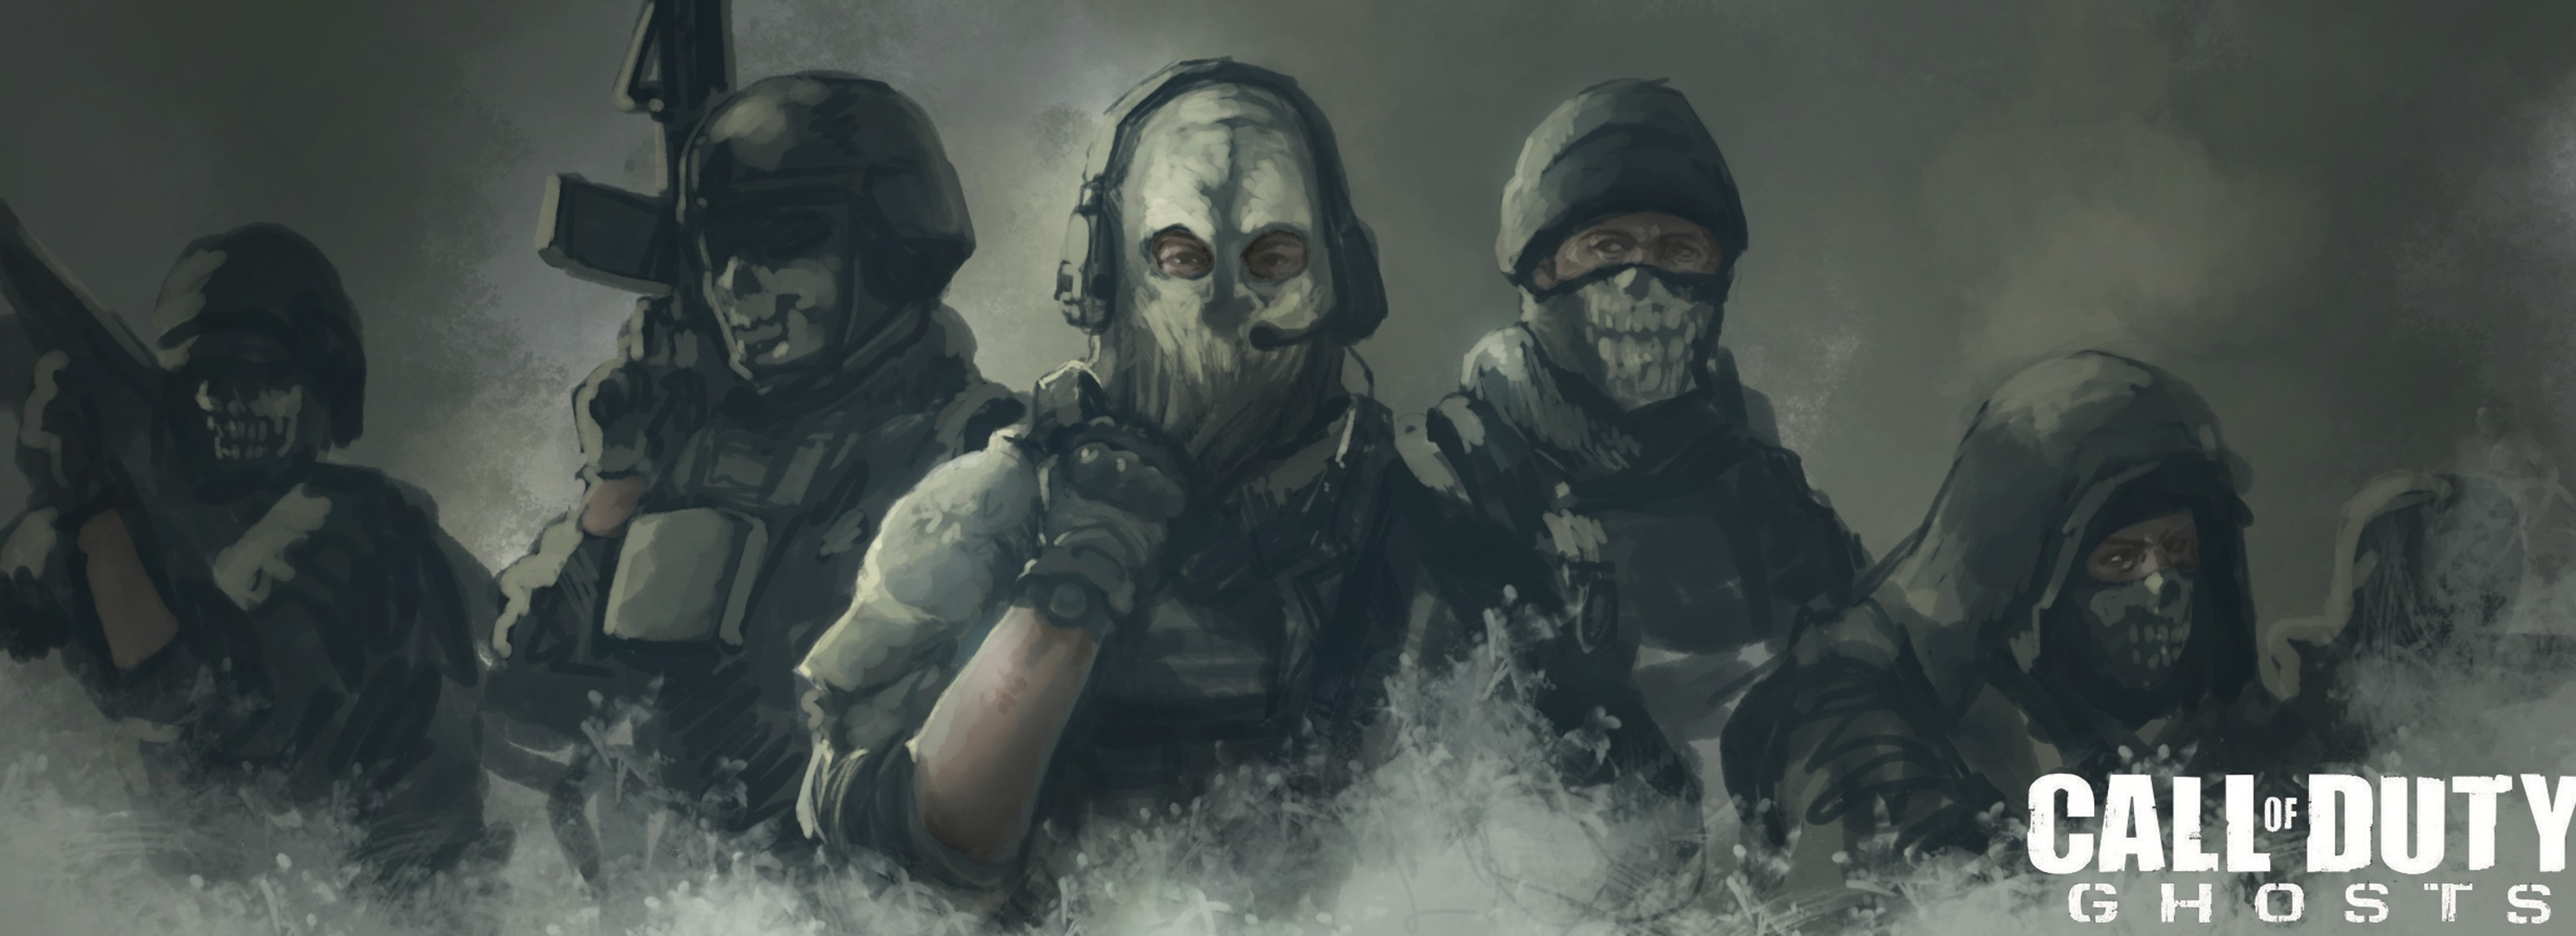 Call Of Duty Ghosts Hd Wallpaper Background Image 2972x1080